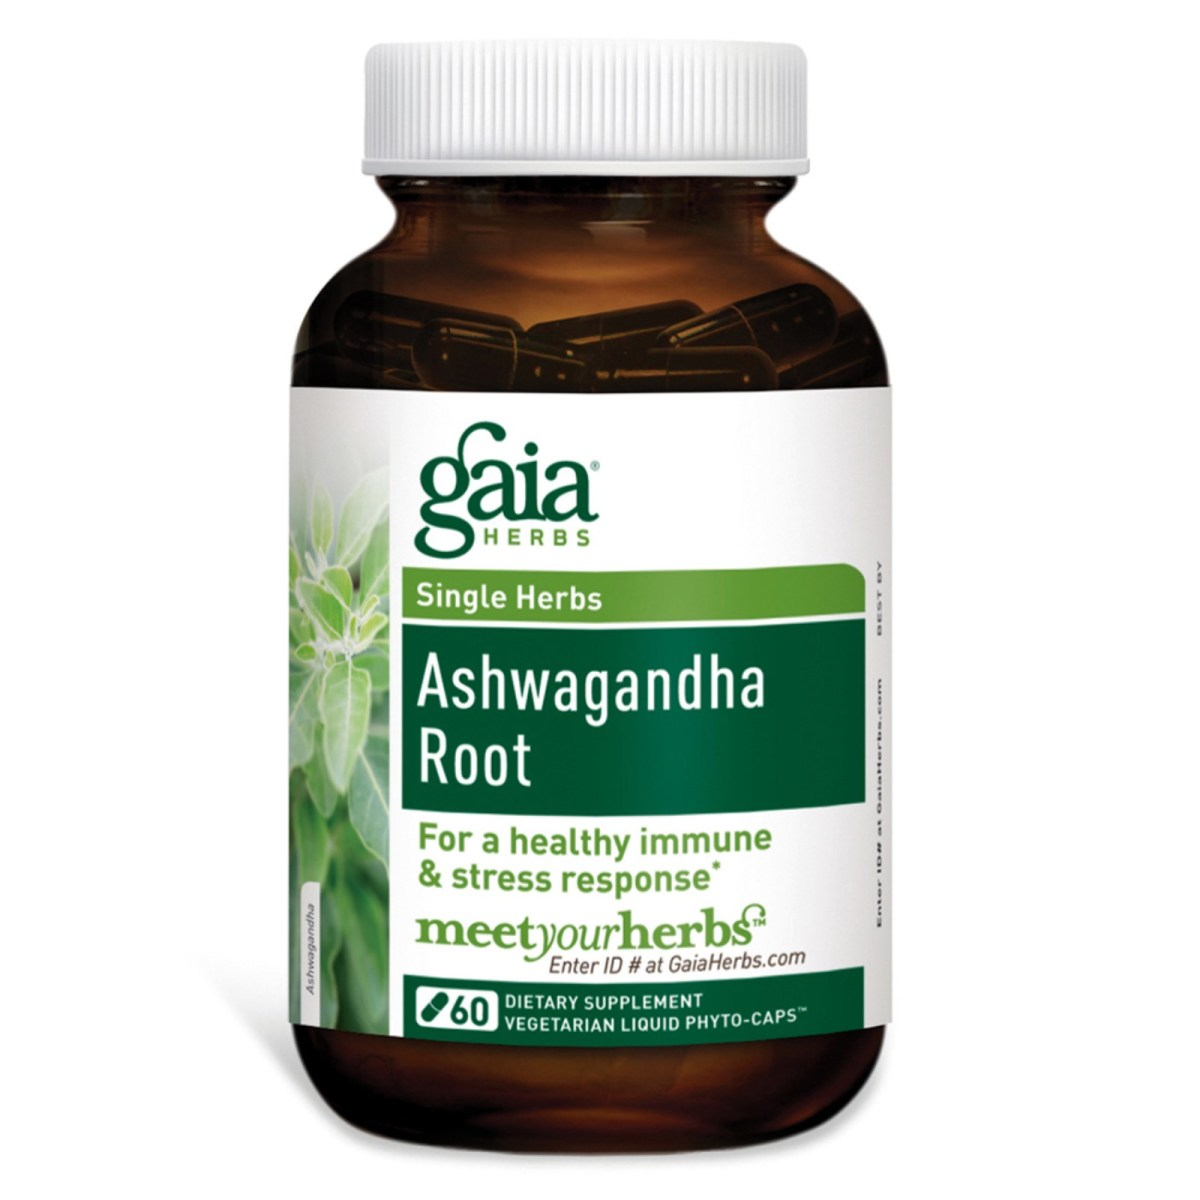 5 Proven Stress-Busting Benefits of Ashwagandha (Plus Our Go